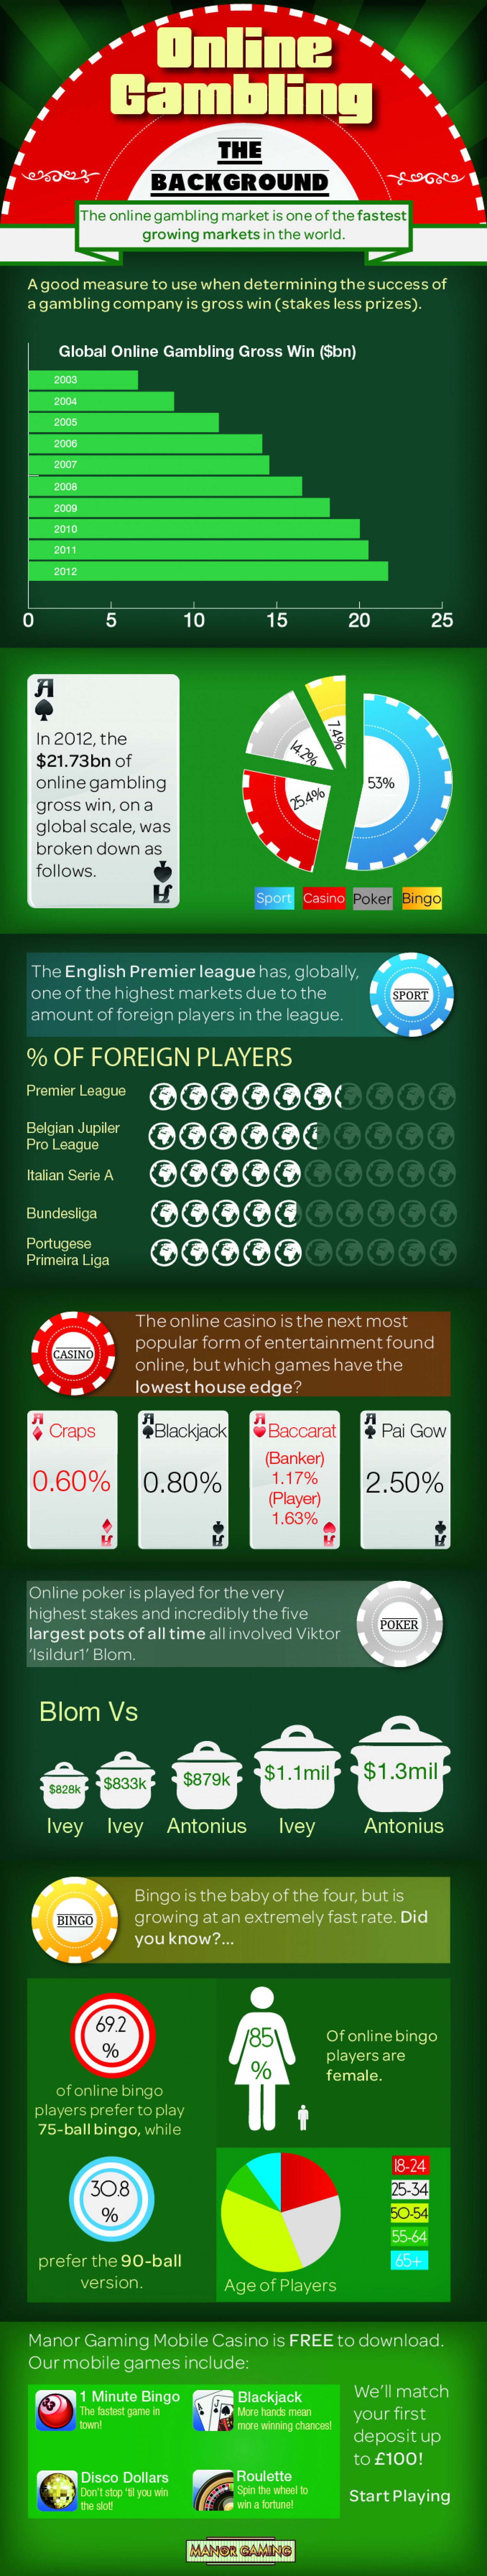 Online Gambling - The Background Infographic